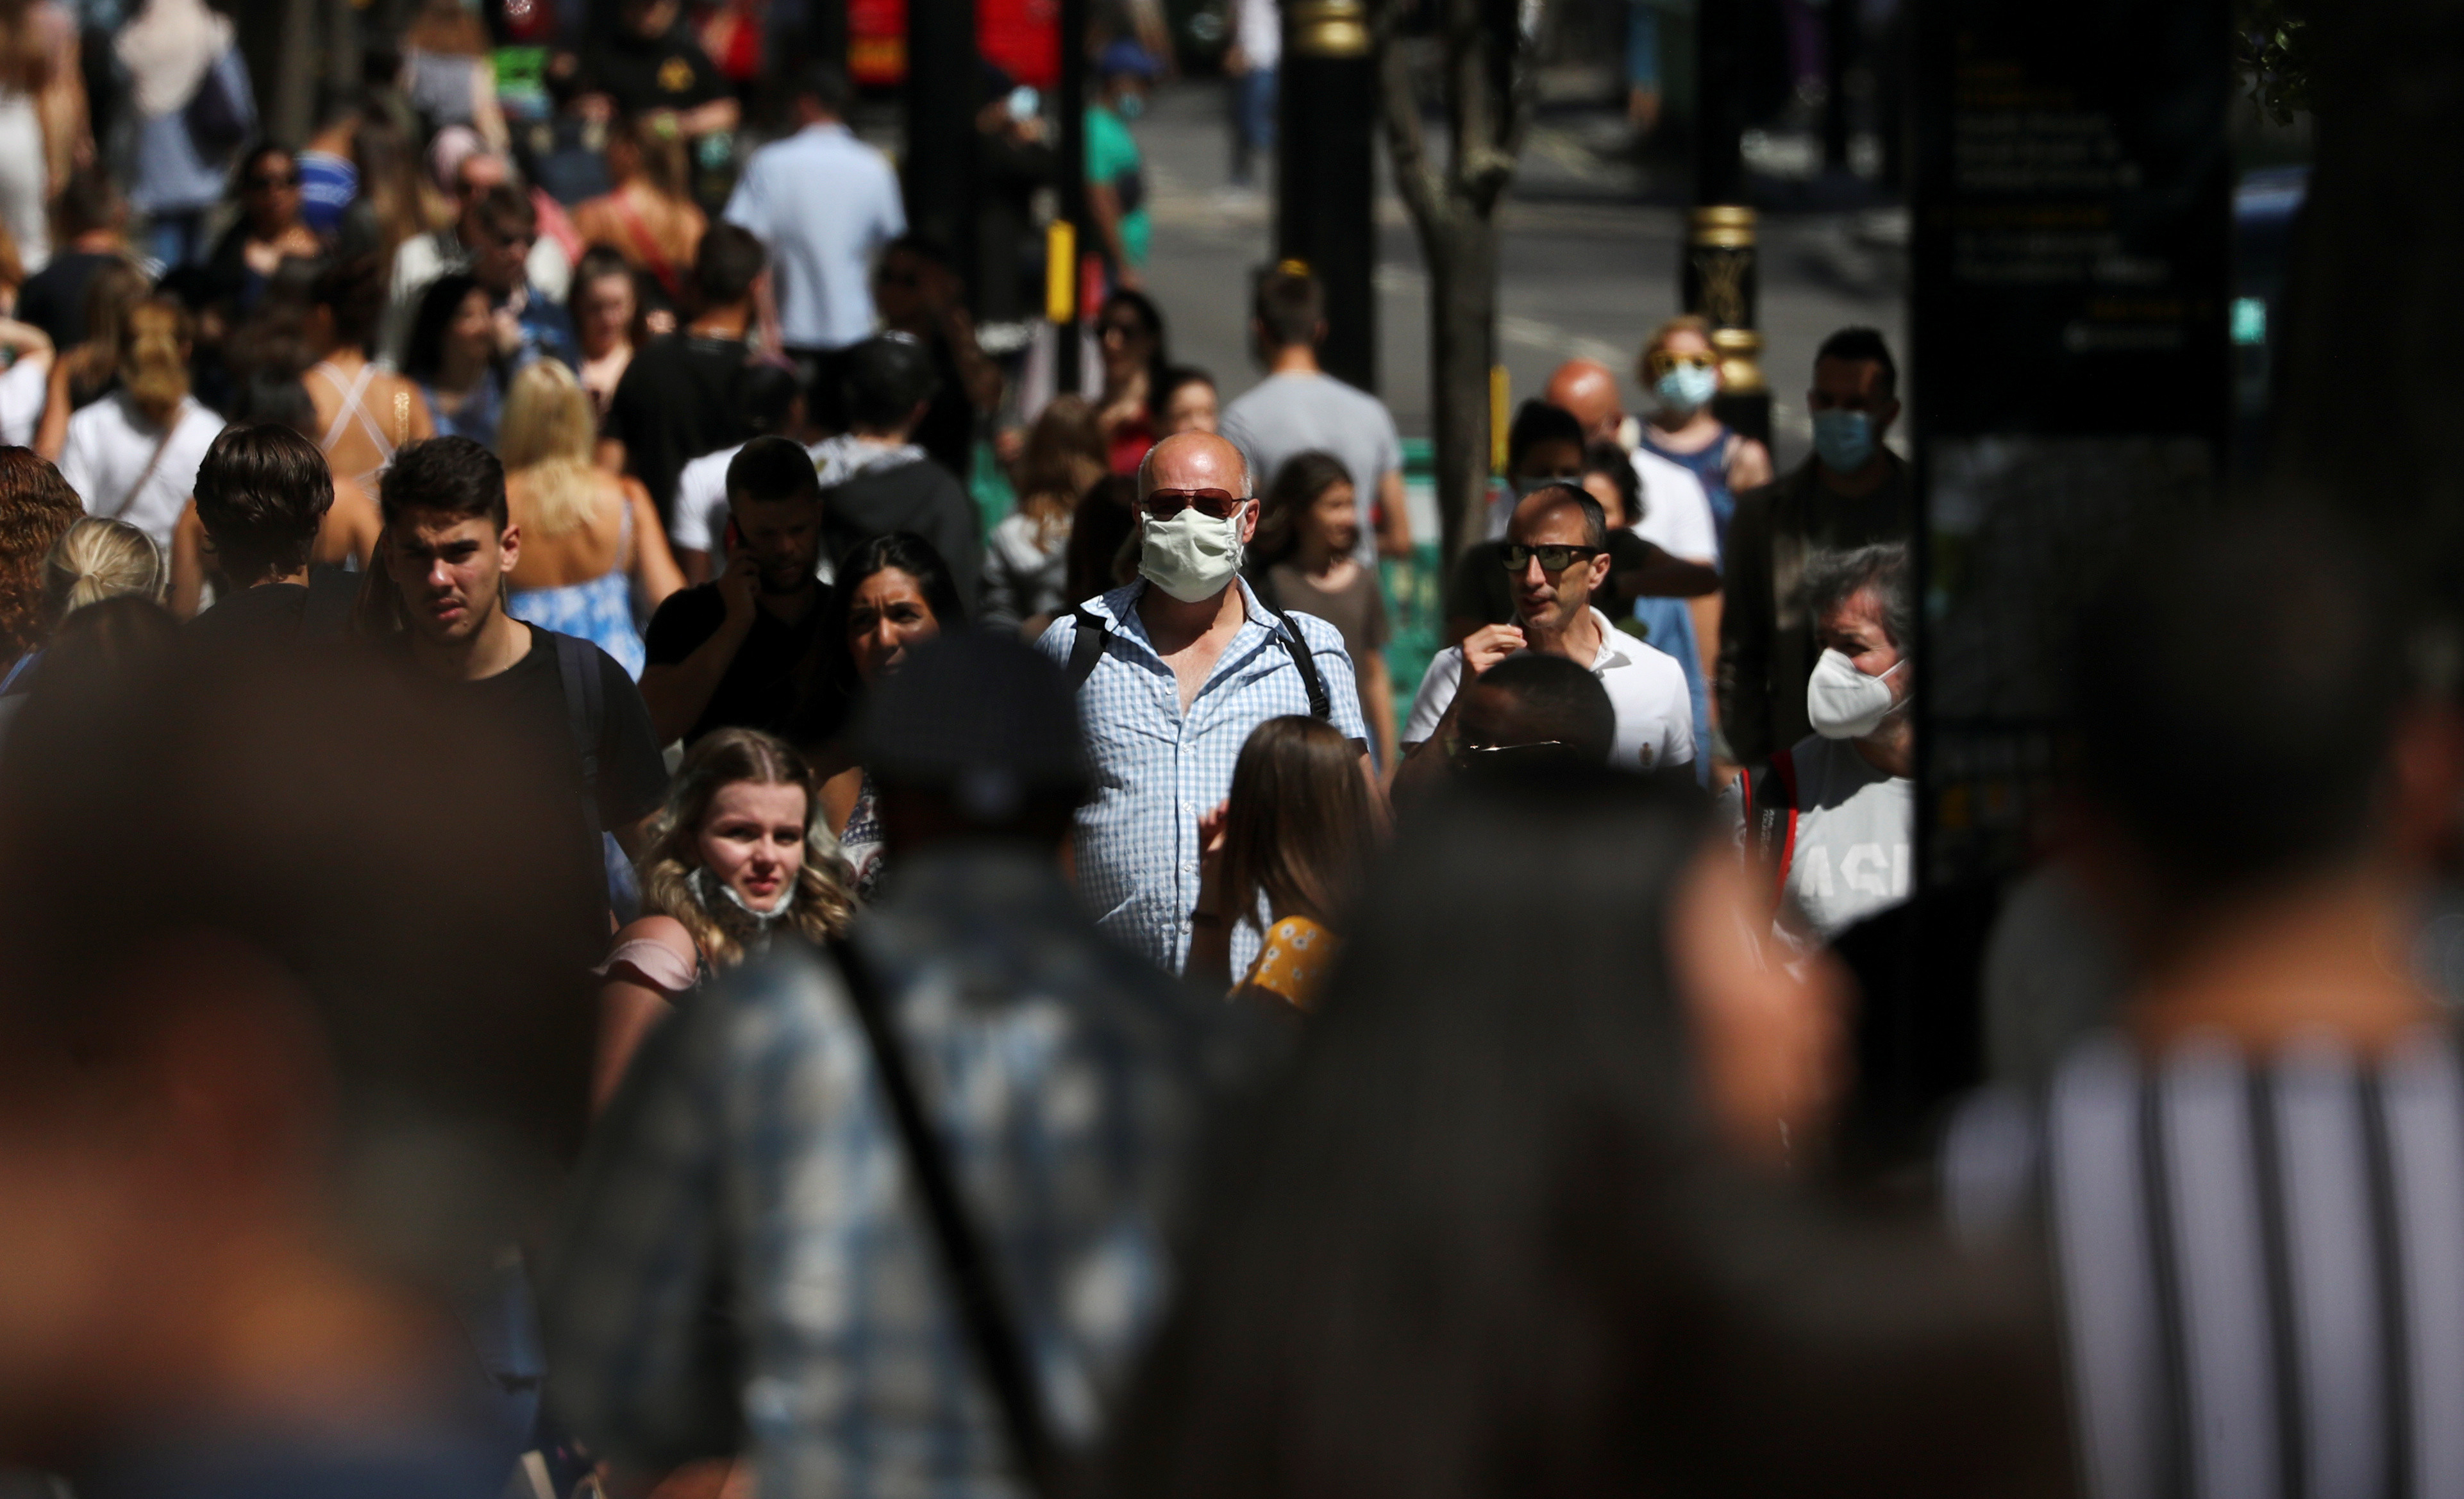 A man wearing a face mask is pictured among a crowd in Oxford Street, following the coronavirus disease (COVID-19) outbreak, in London, Britain, July 18, 2020. REUTERS/Simon Dawson - RC2QVH9PV8MP